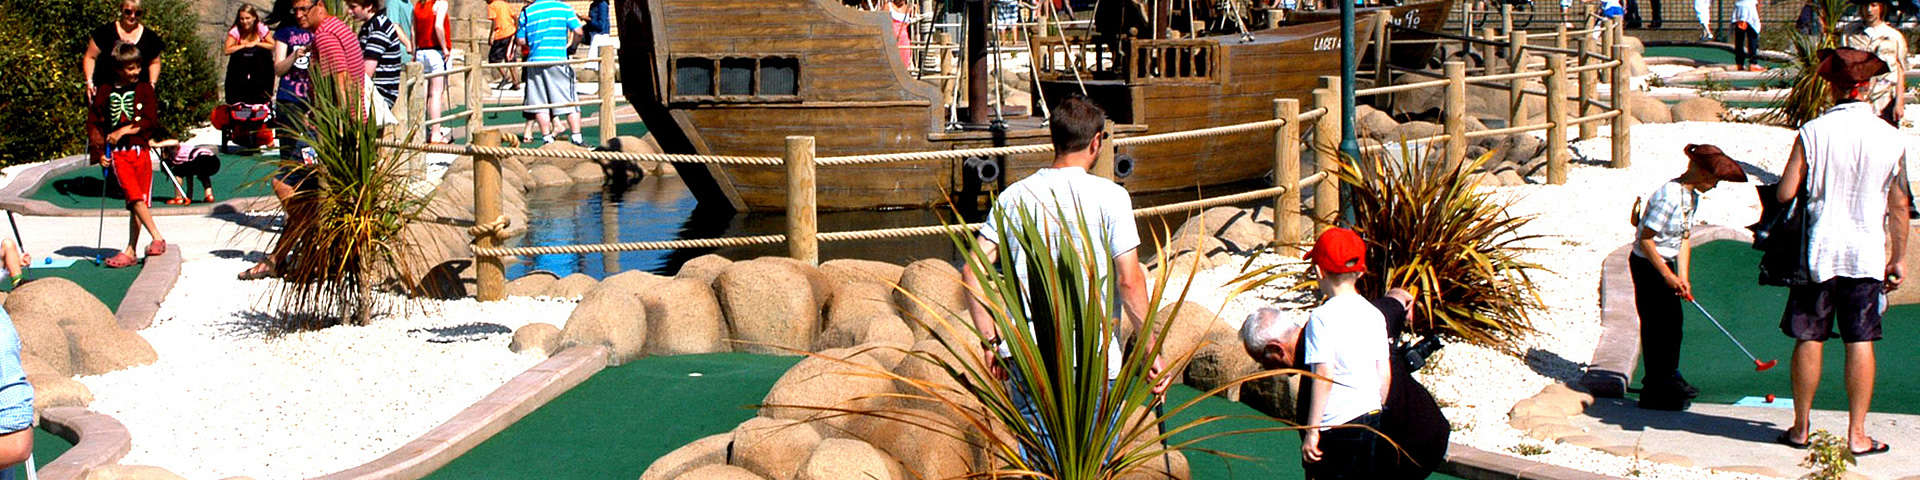 hastings pirate mini golf